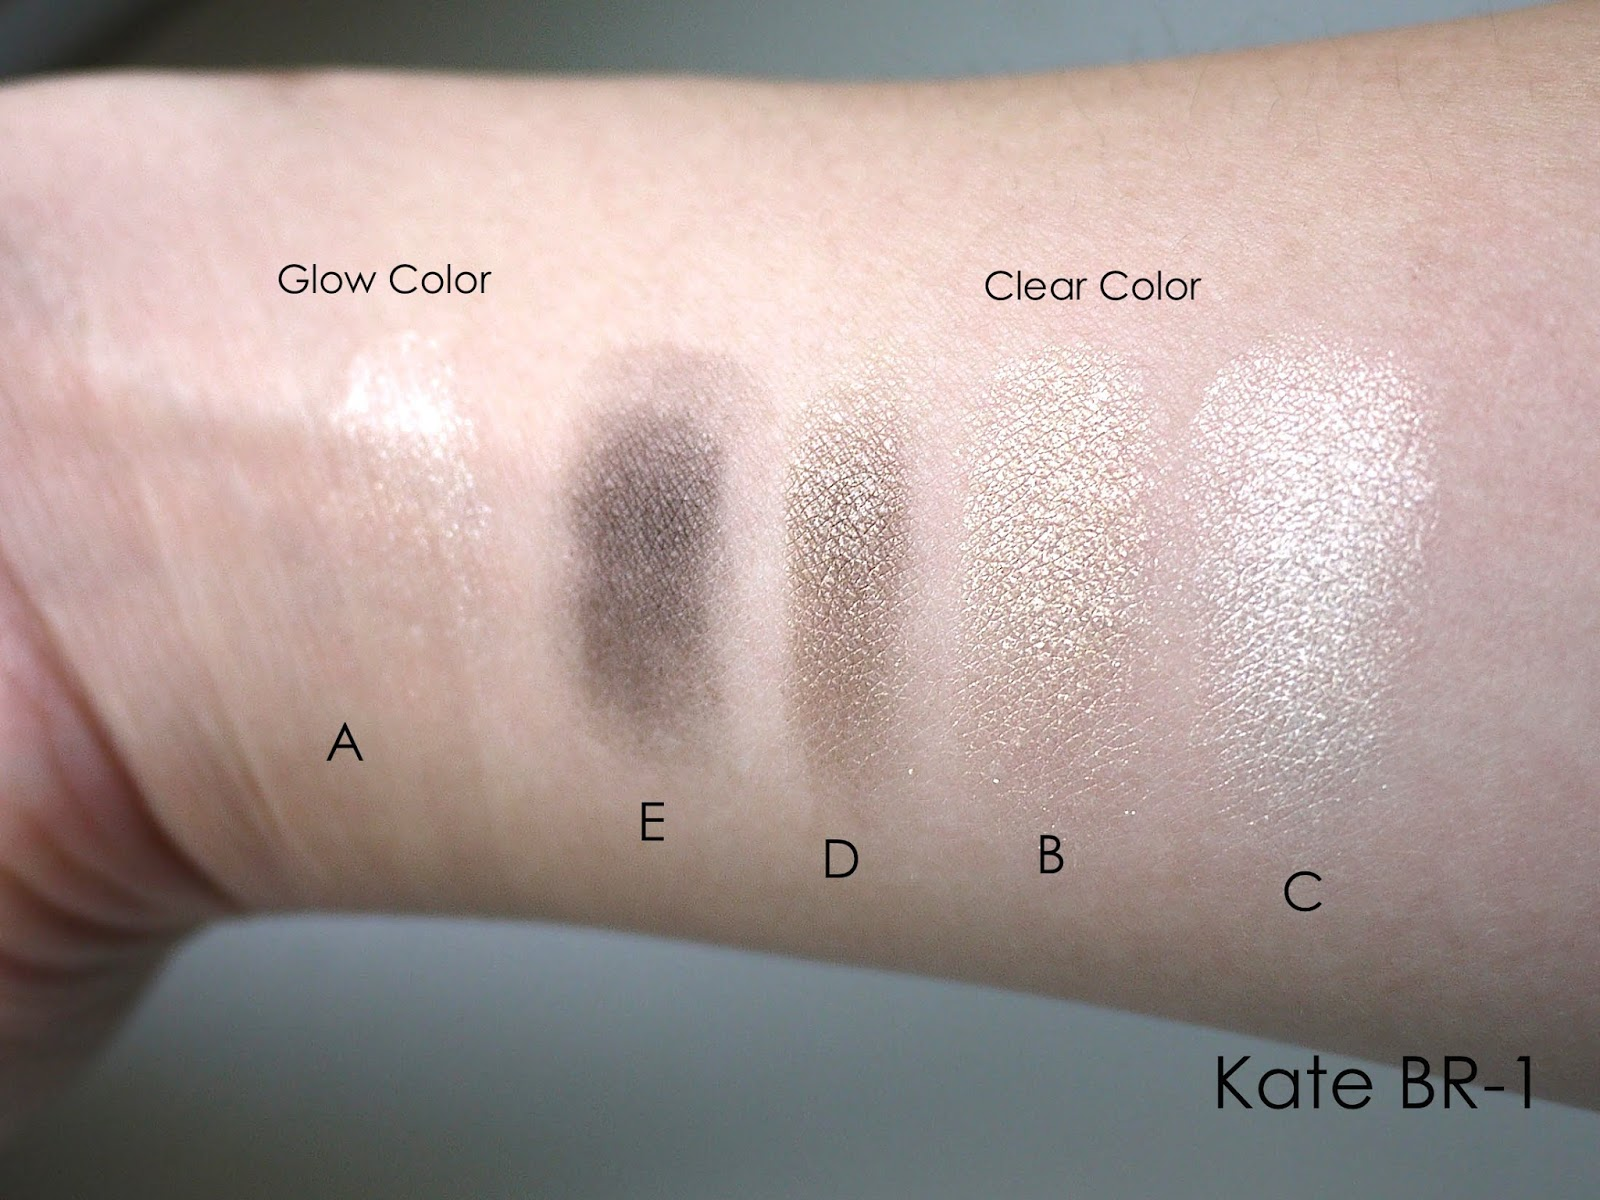 Kanebo Kate real create eyes br1 br-1 review swatch